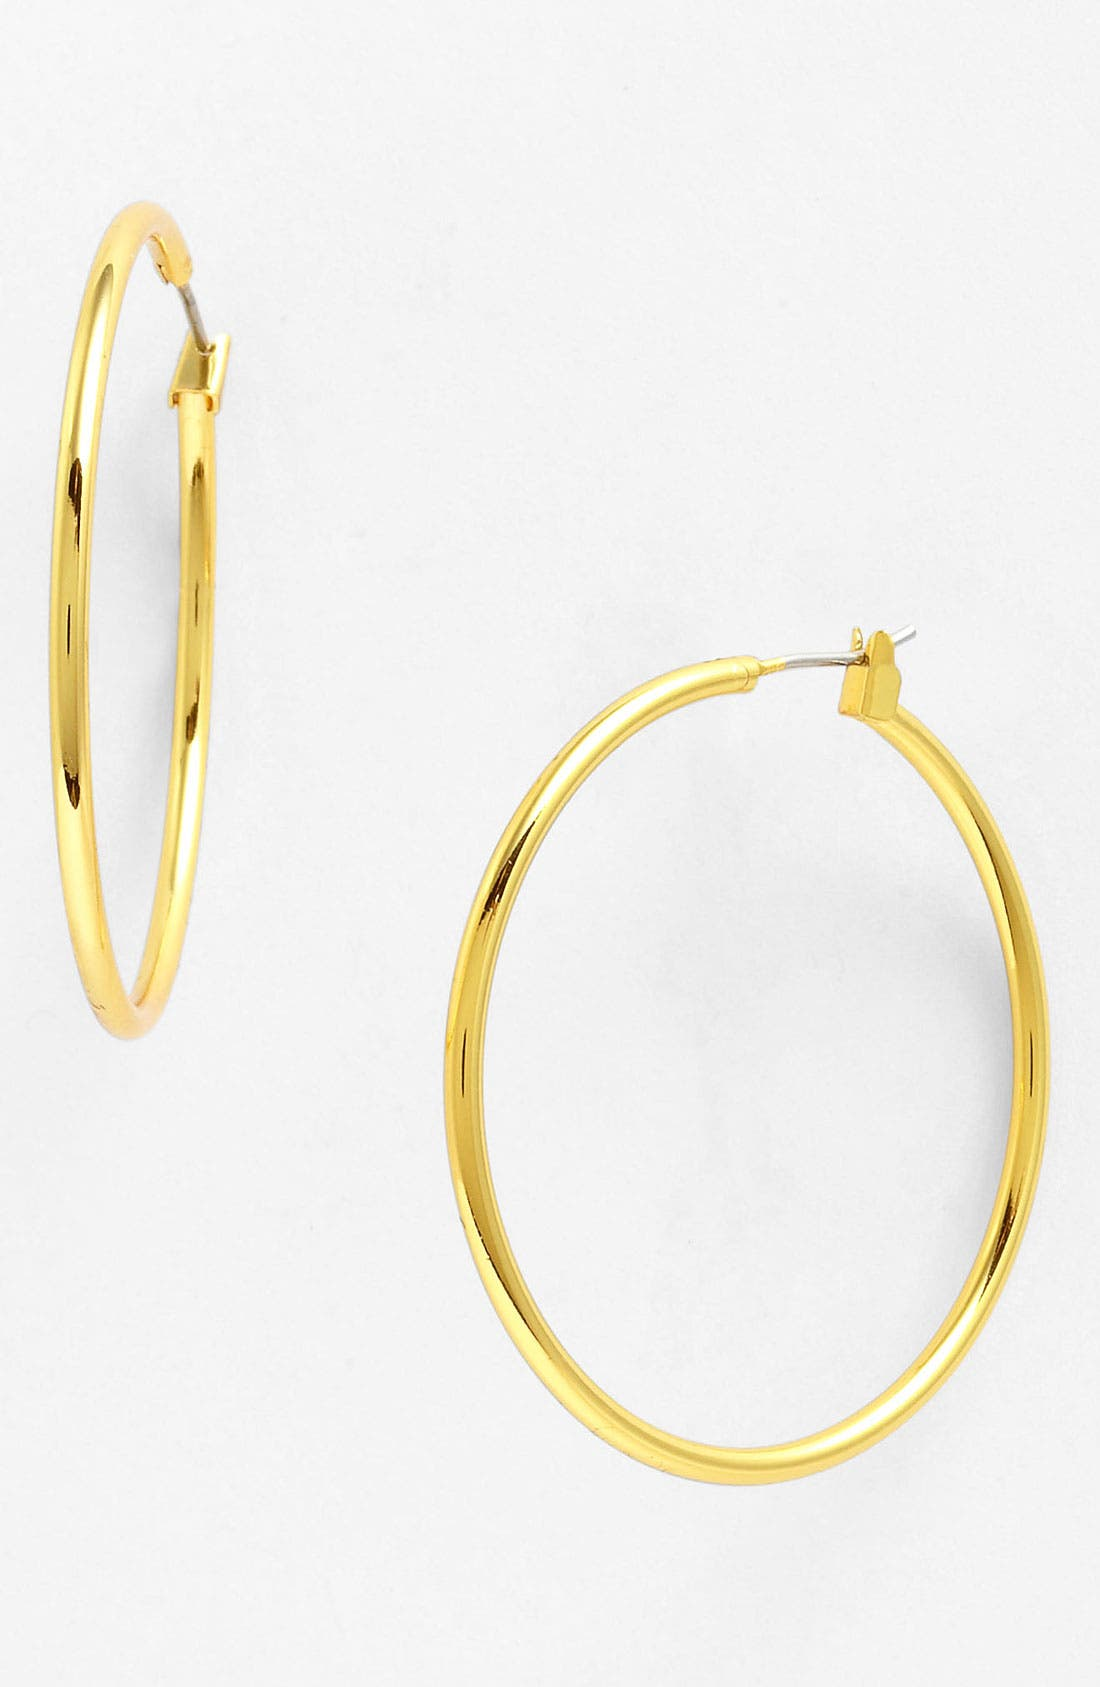 Main Image - Anne Klein Large Hoop Earrings